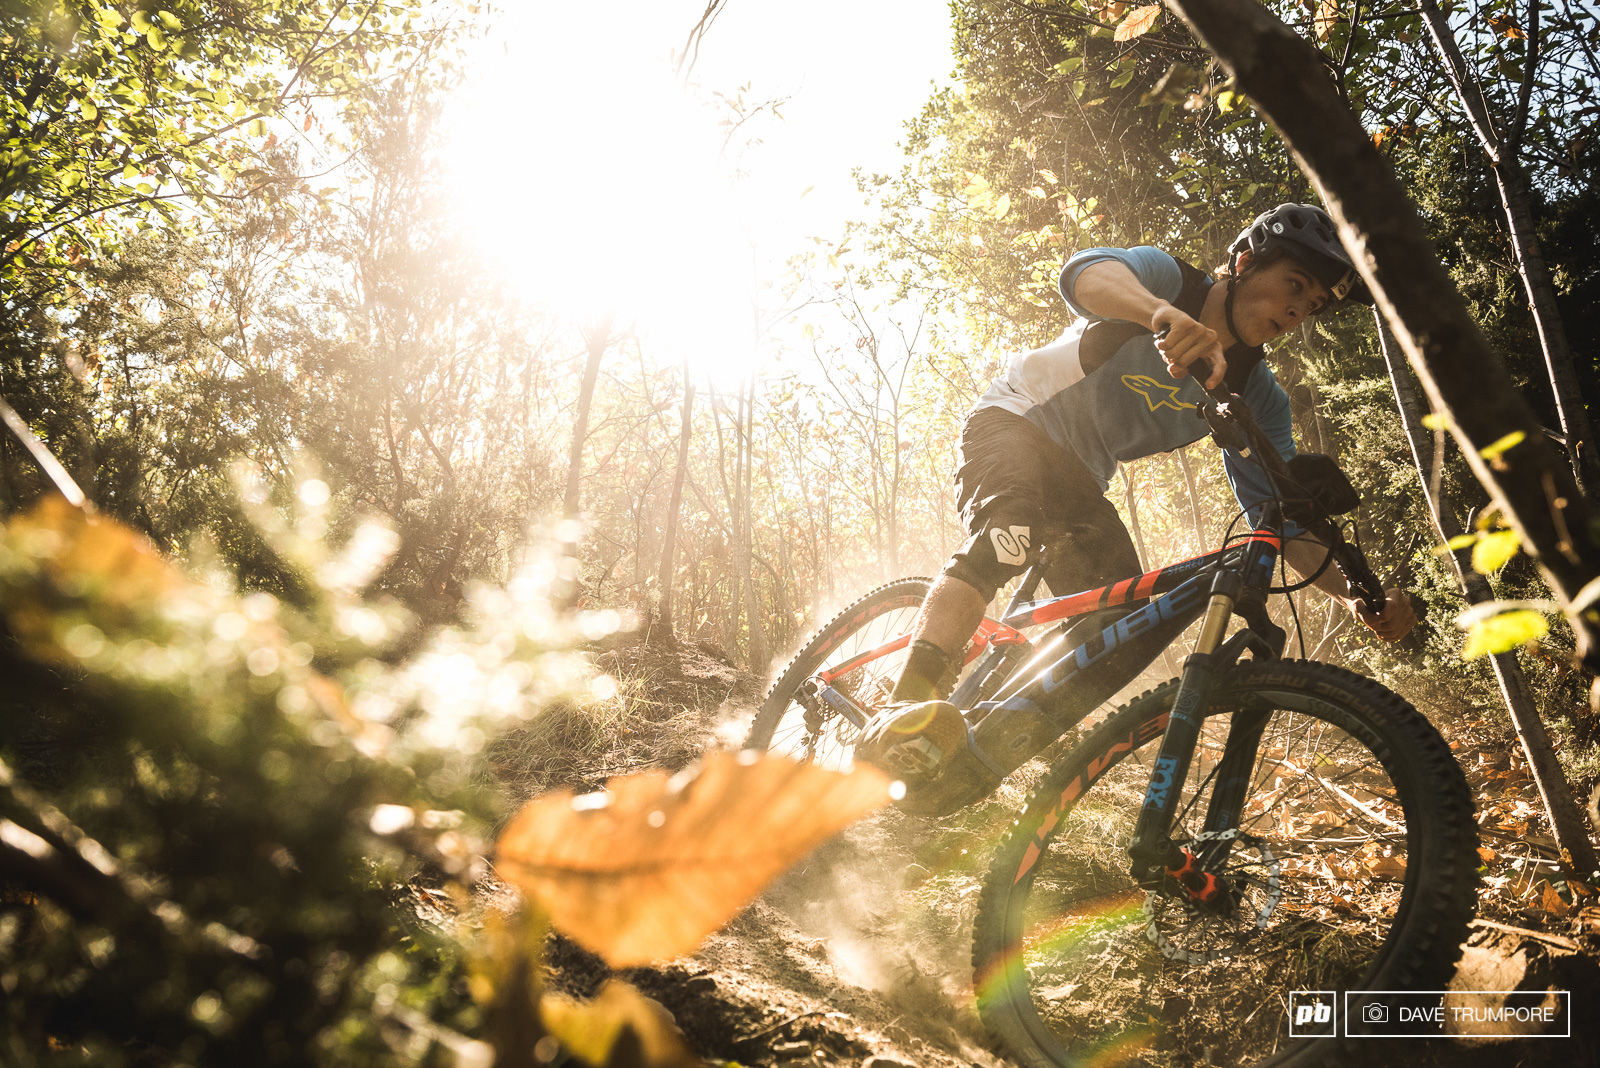 Blazing sun and dusty trails are in store all week here in Finale.